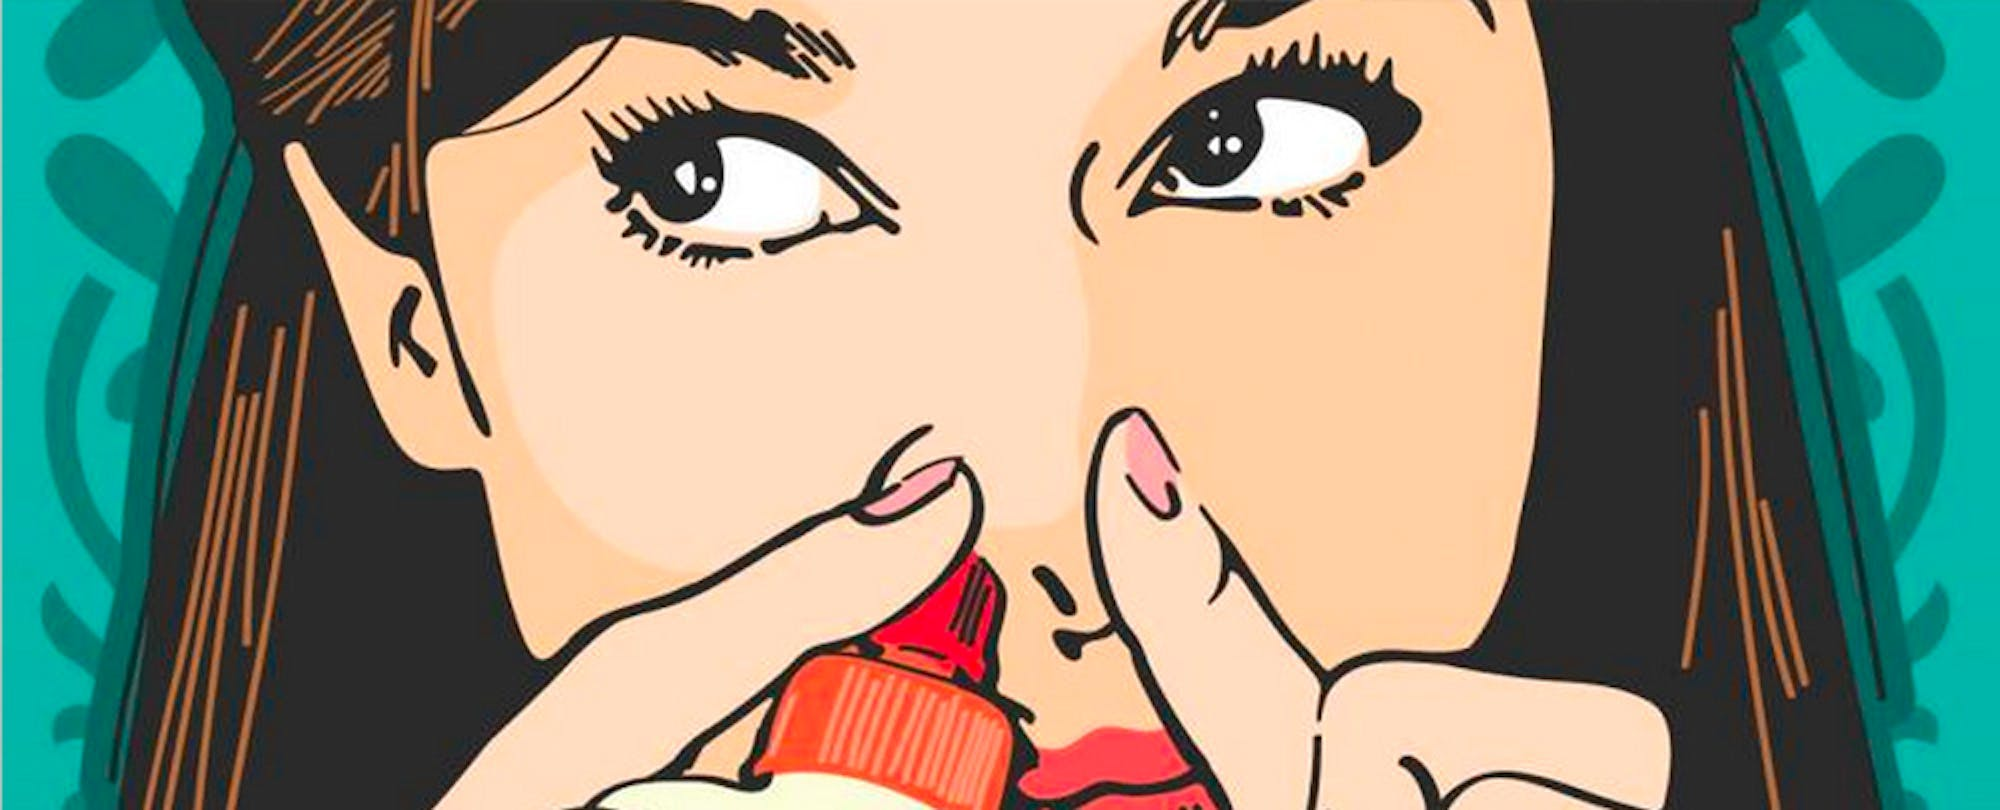 Advice for Your New School Year: Don't Sniff the Glue!